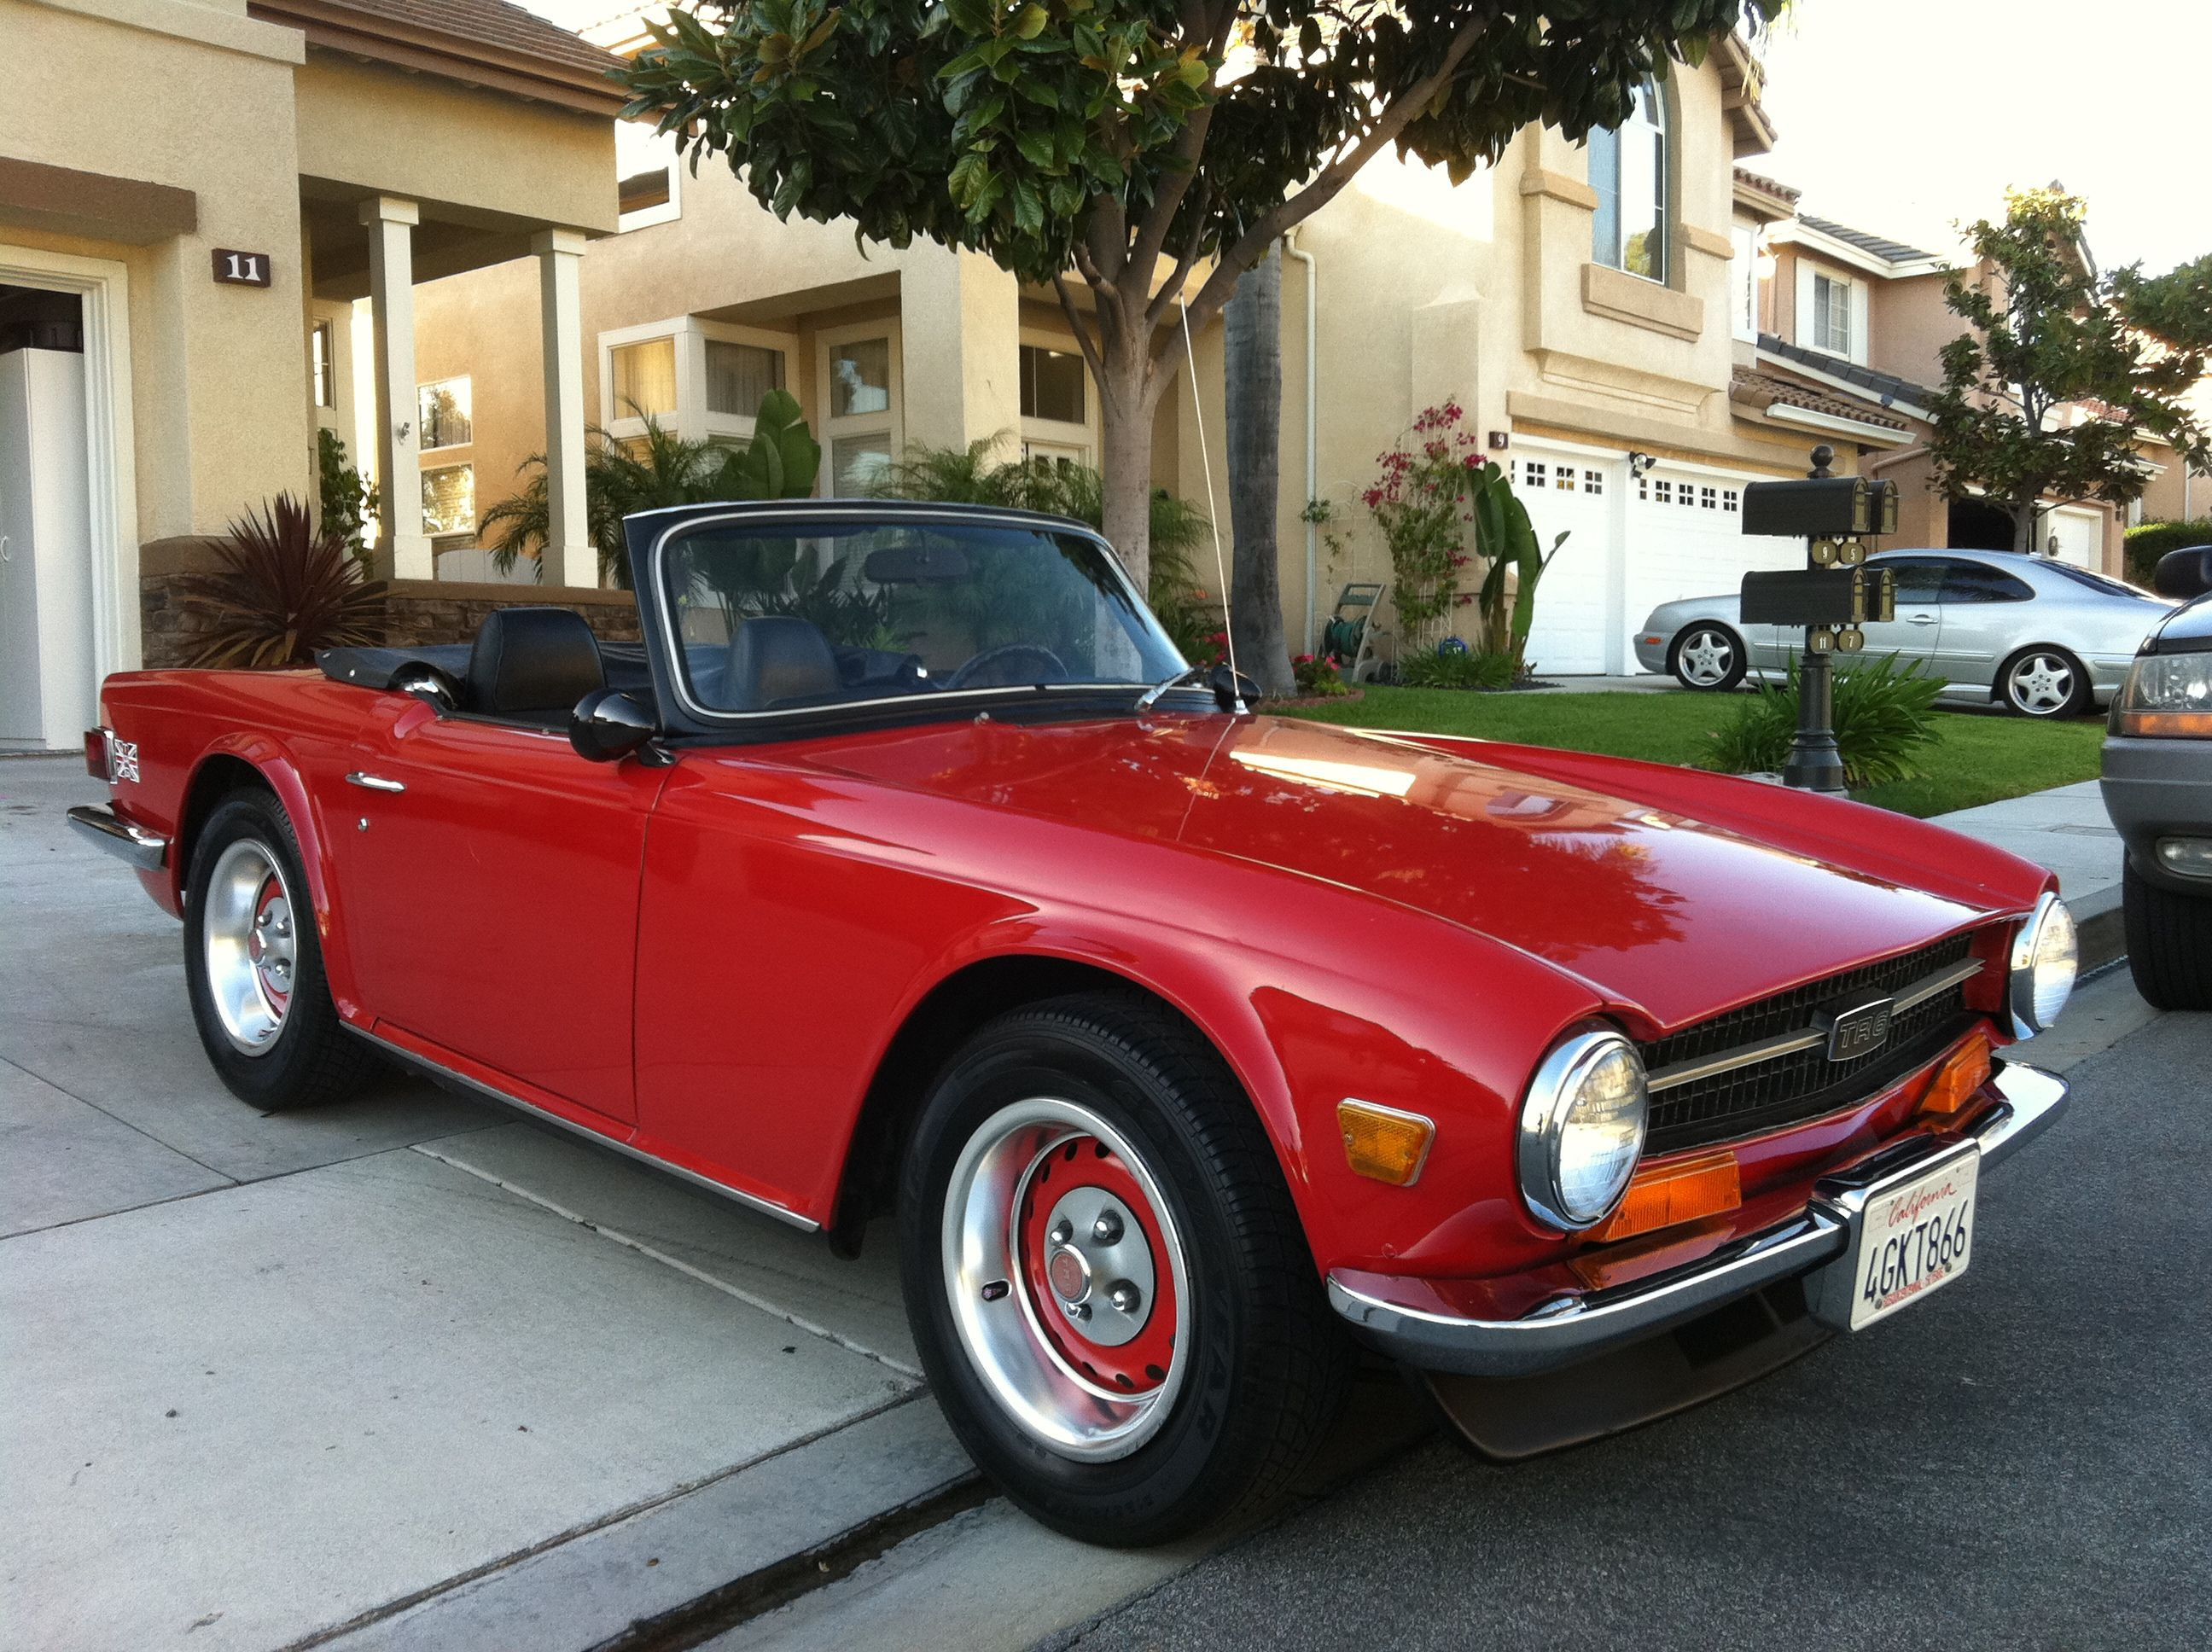 Image result for customized triumph tr6 triumph tr6 mods ads pinterest british car engine and ford